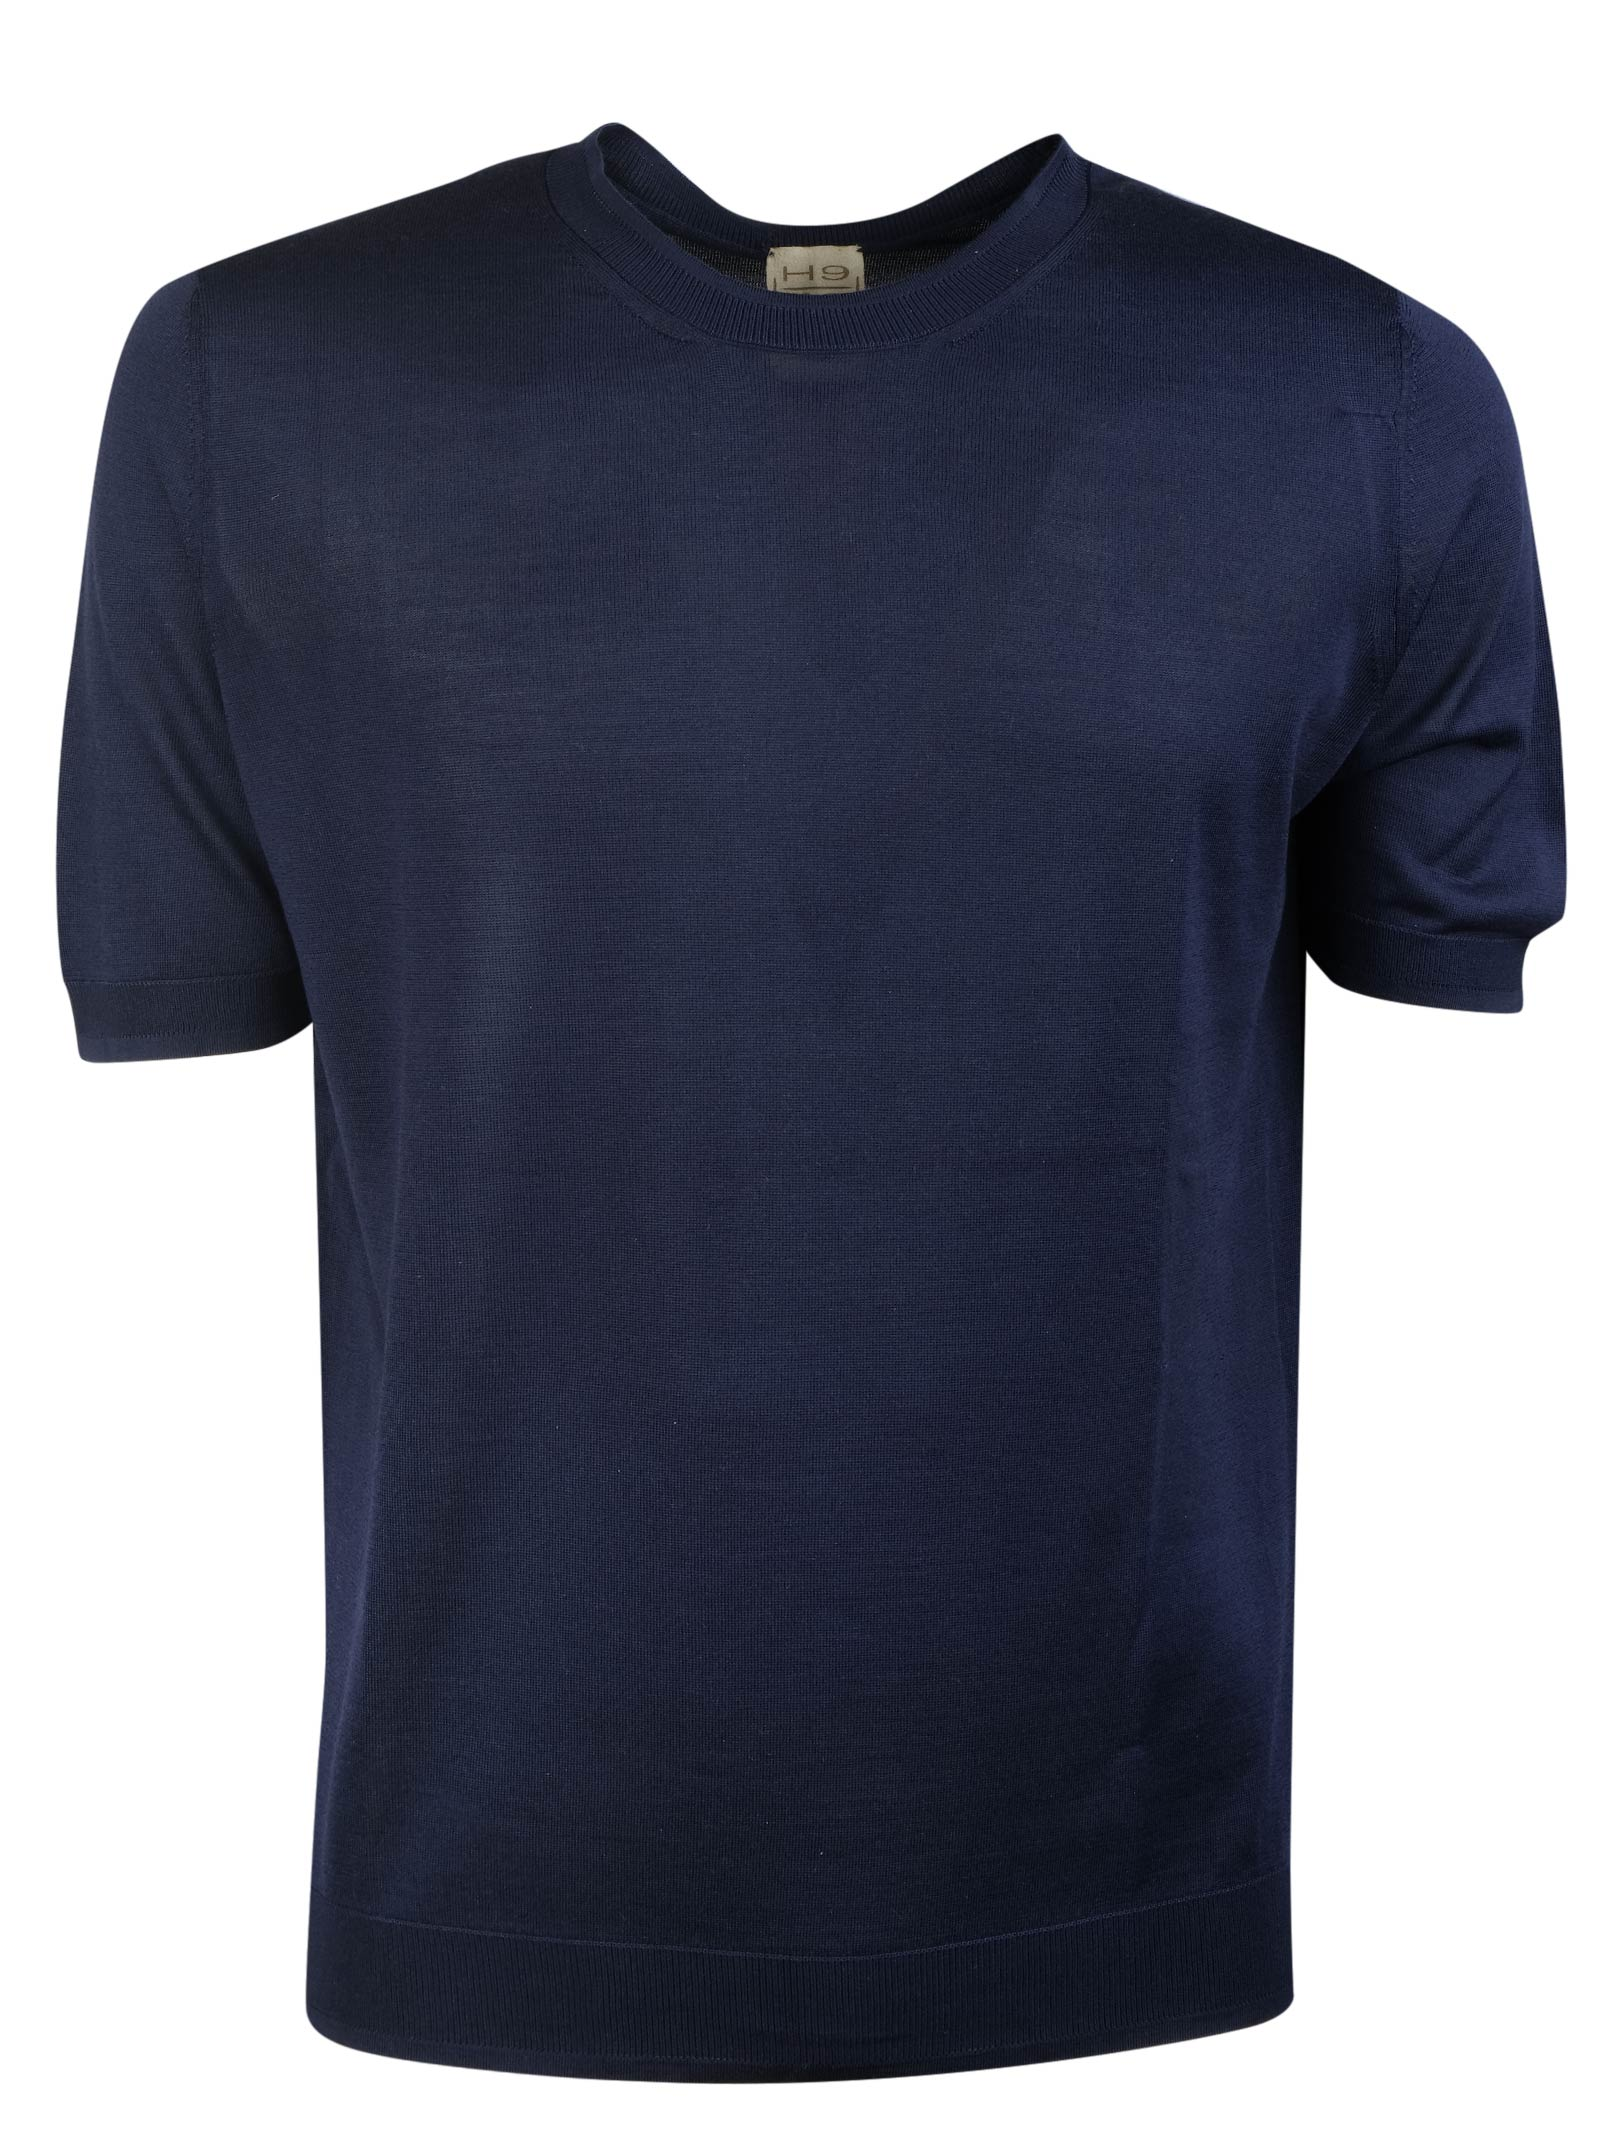 Silk t-shirtMade in Italy H953 | T-shirts | 324090